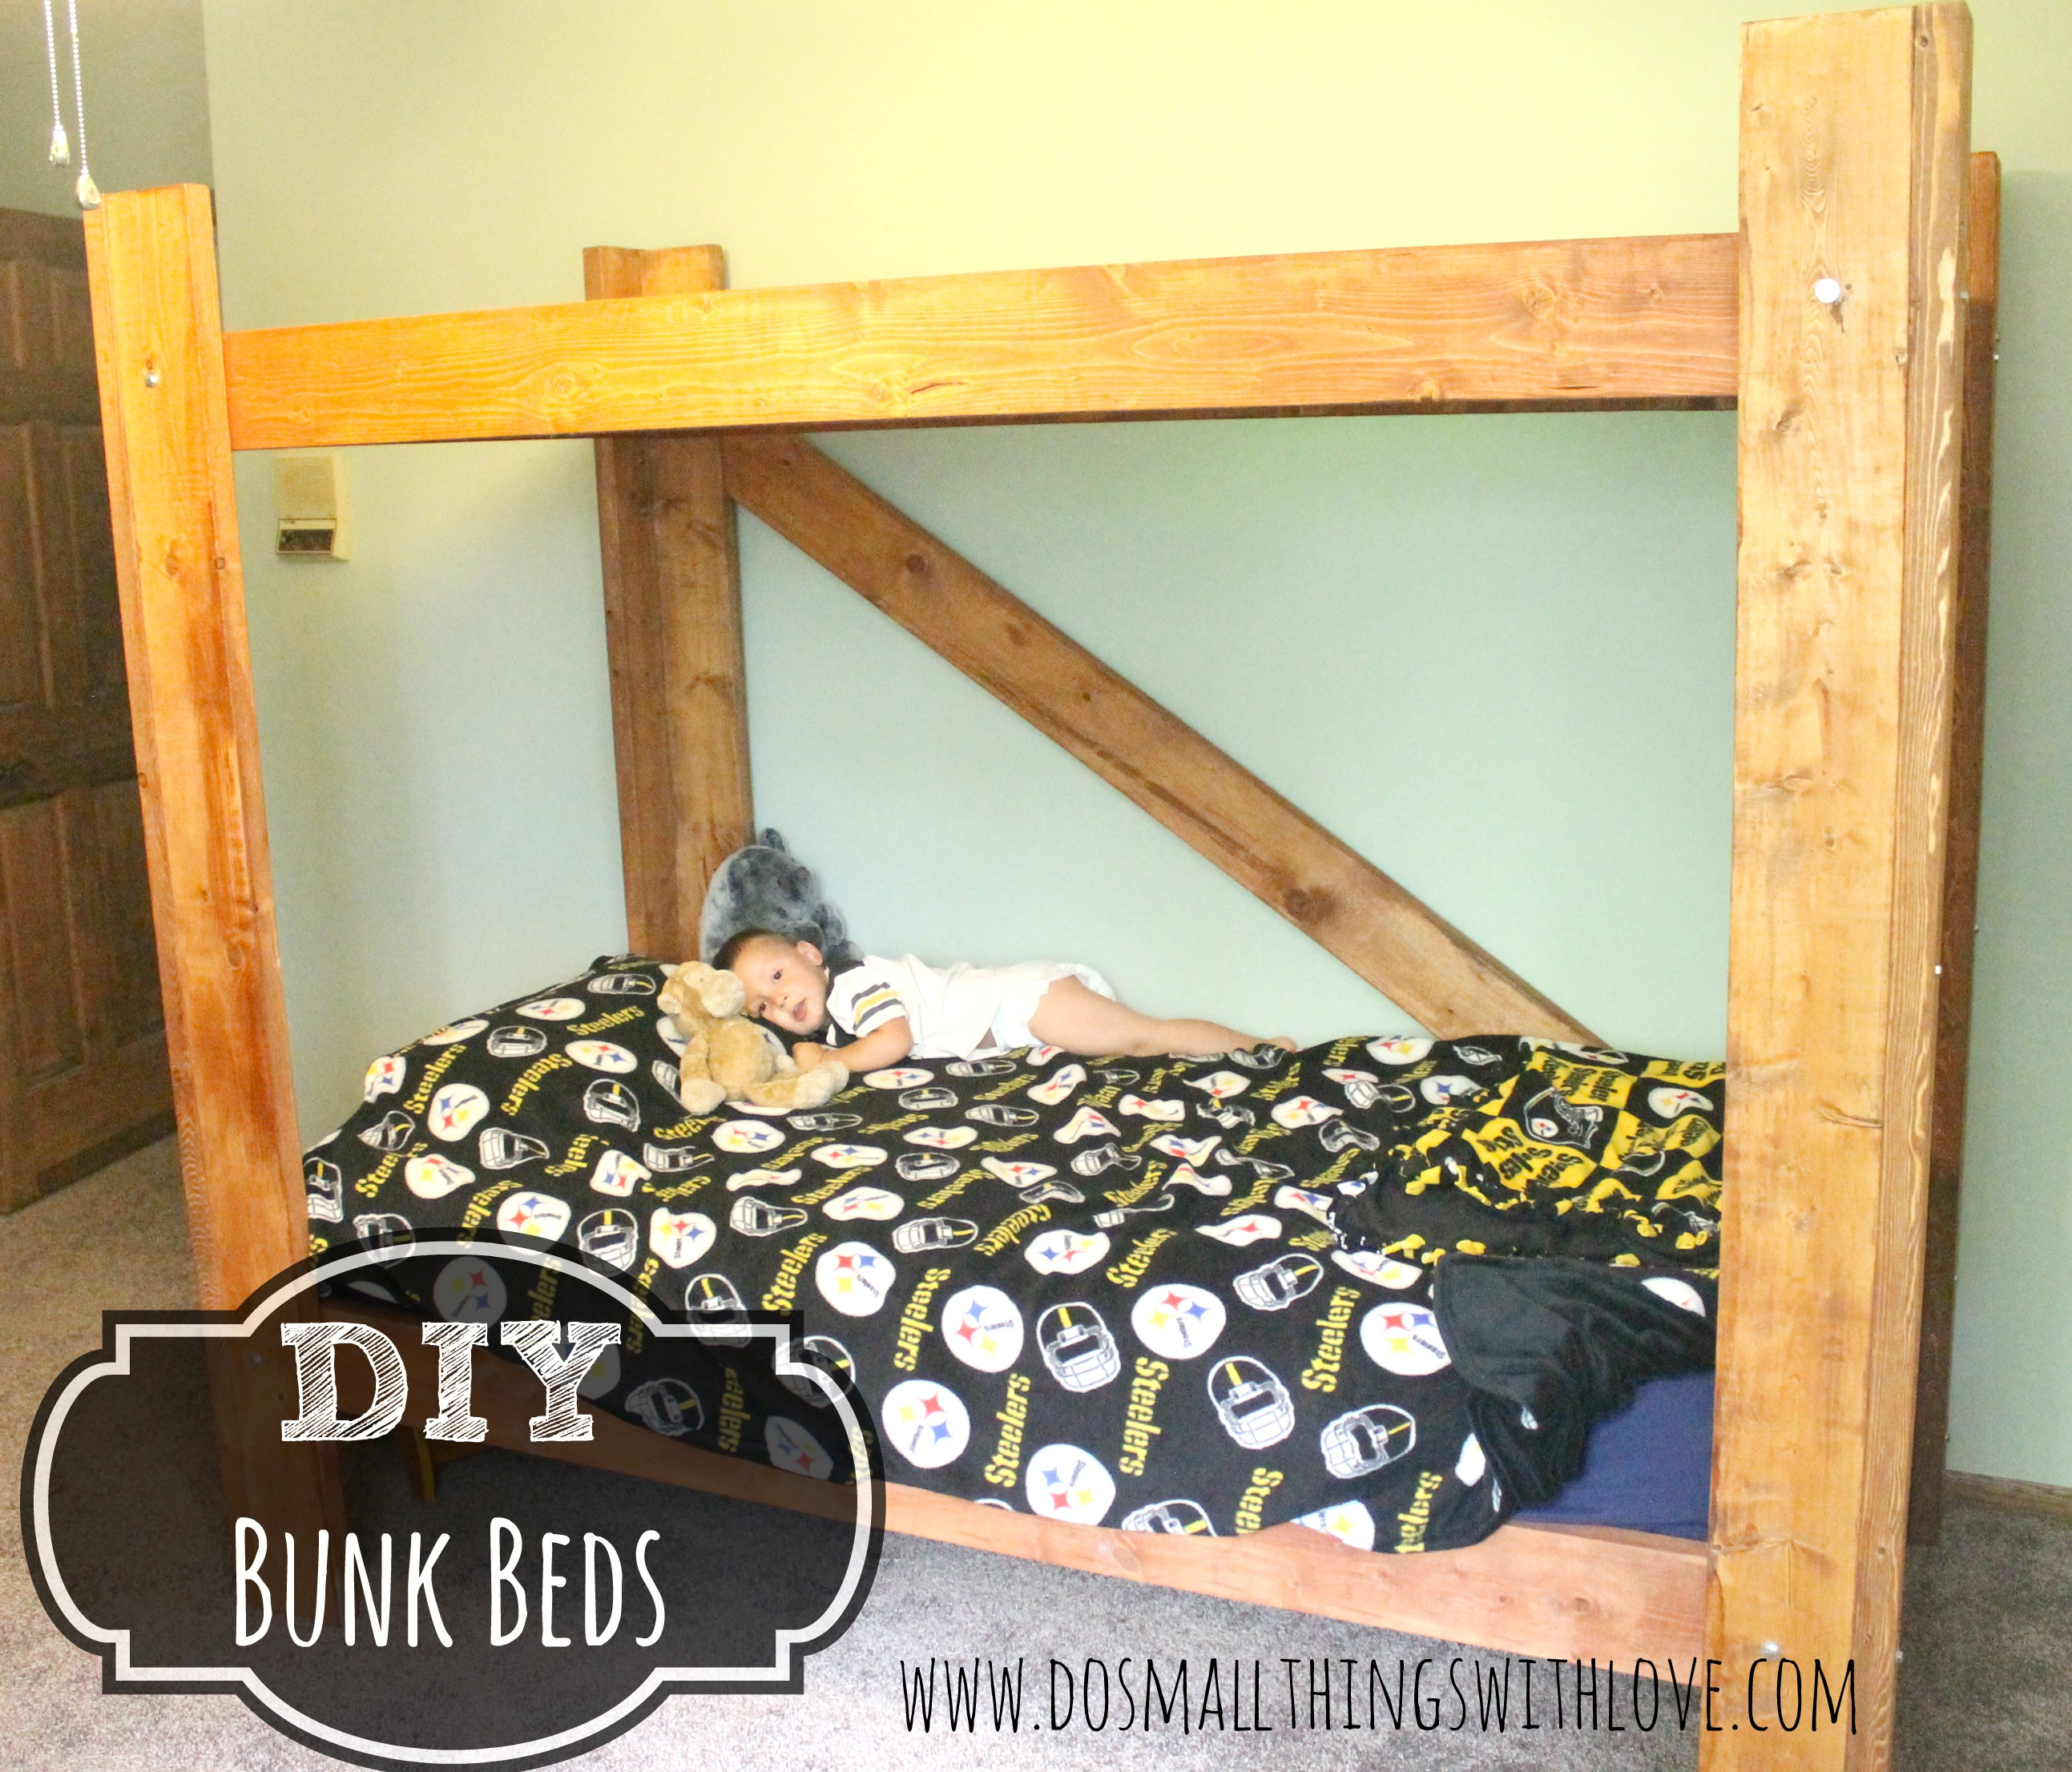 diy bunk beds do small things with great love. Black Bedroom Furniture Sets. Home Design Ideas